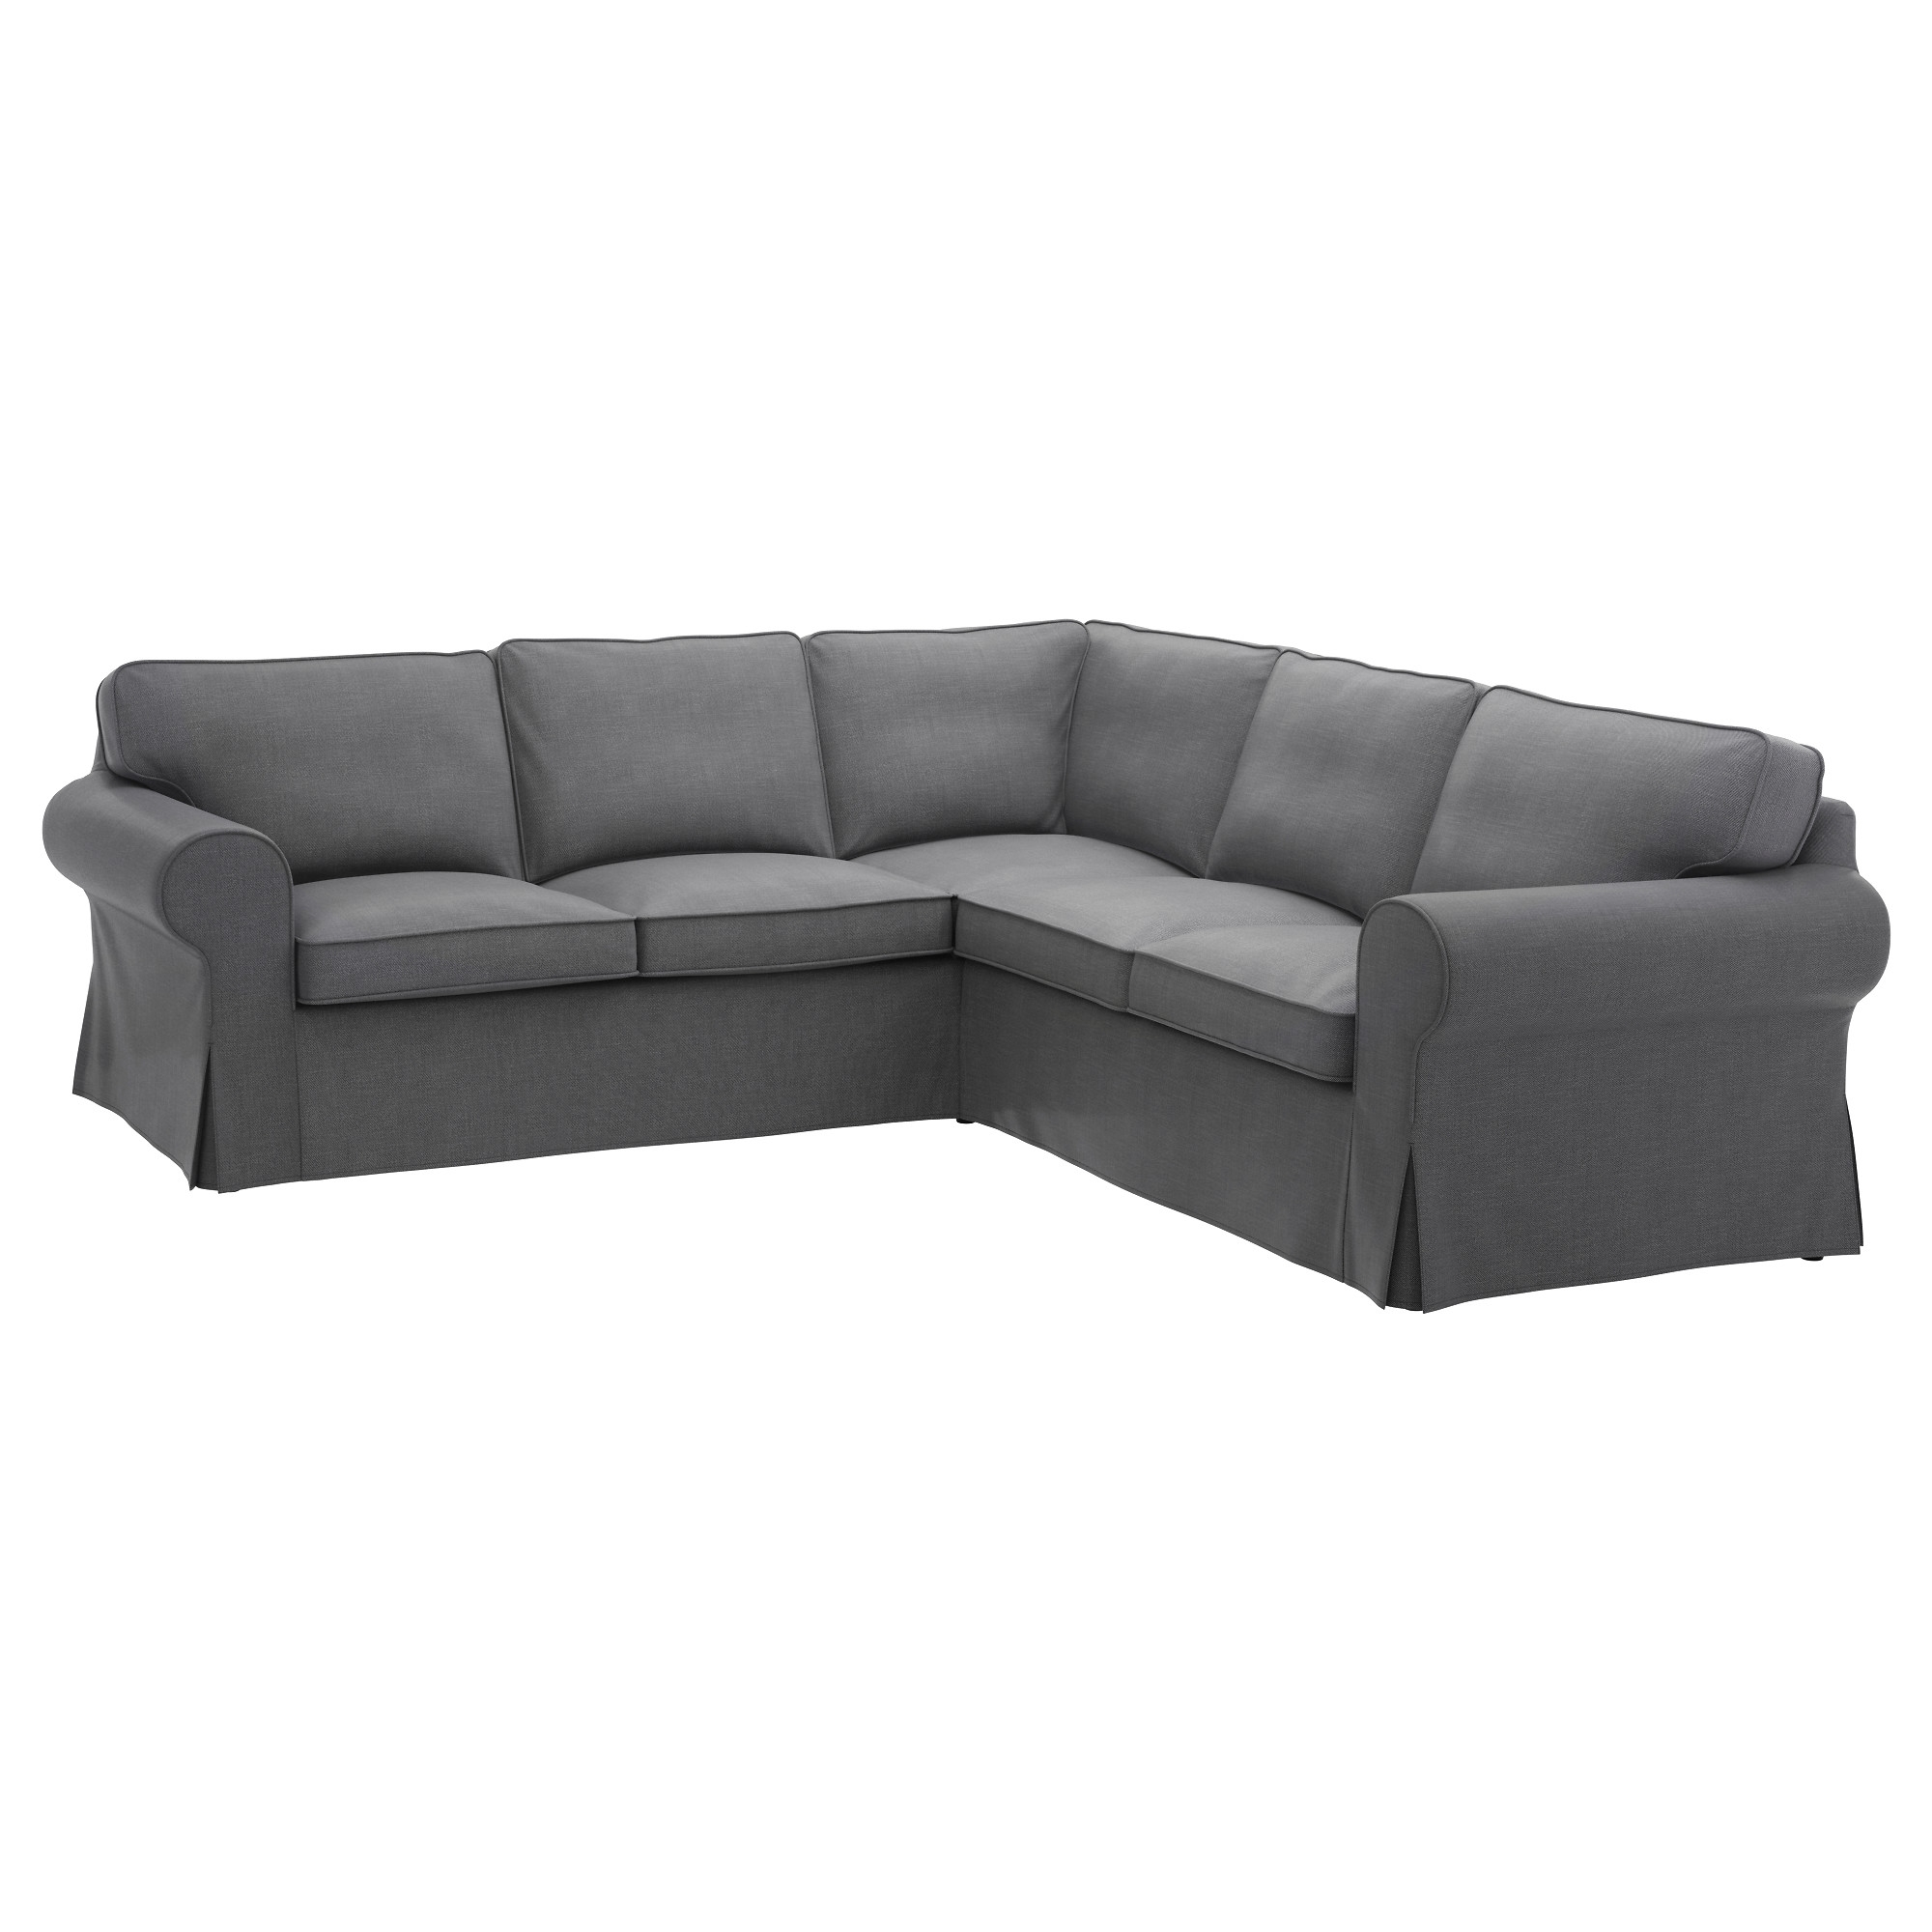 Ikea Sectional Sleeper Sofas With Regard To Well Known Beautiful Sectional Sleeper Sofa Ikea Latest Home Design (View 9 of 20)